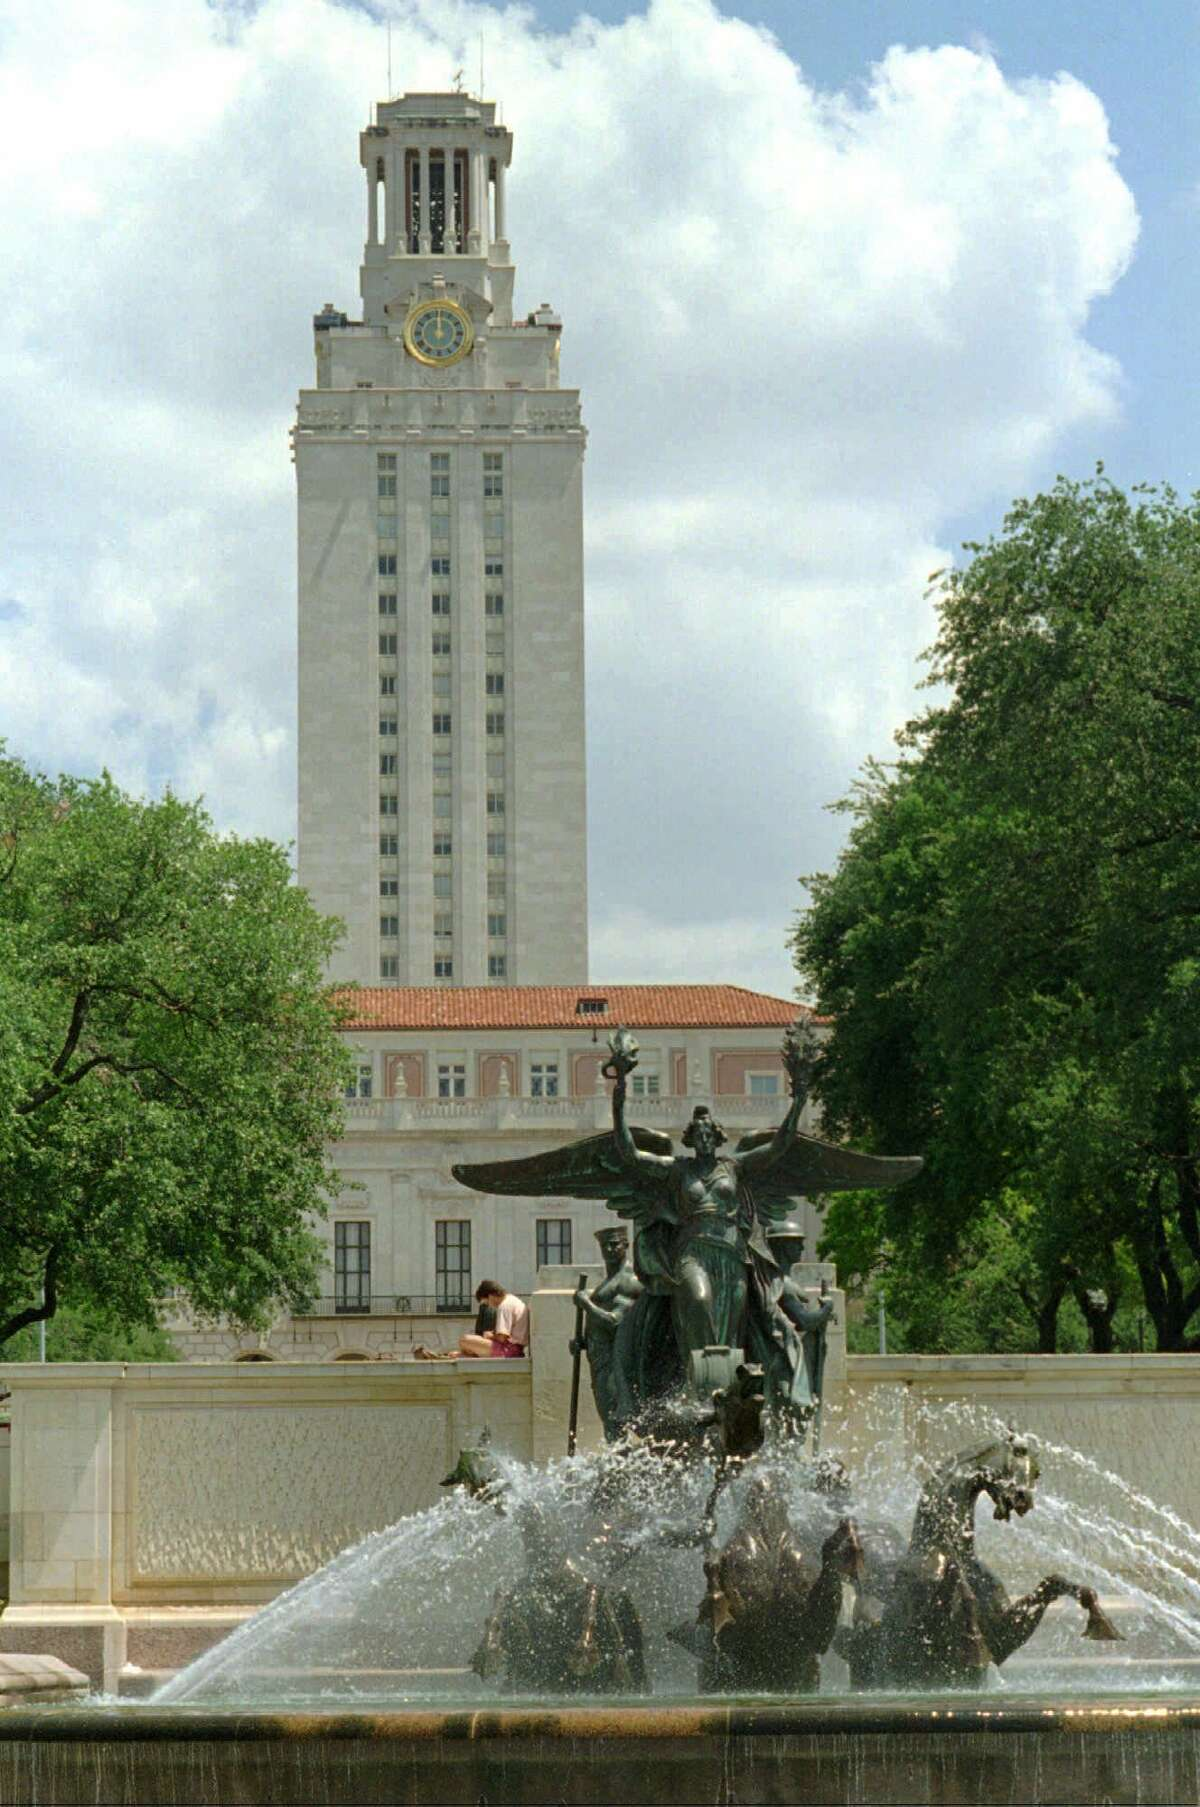 FILE -- The main tower at the University of Texas is shown in this July 1, 1996 file photo in Austin, Texas. The University of Texas board of regents voted unanimously Thursday, Nov. 12, 1998 to reopen the school's landmark clocktower, once the site of one of the nation's worst mass murders. (AP Photo/Harry Cabluck)